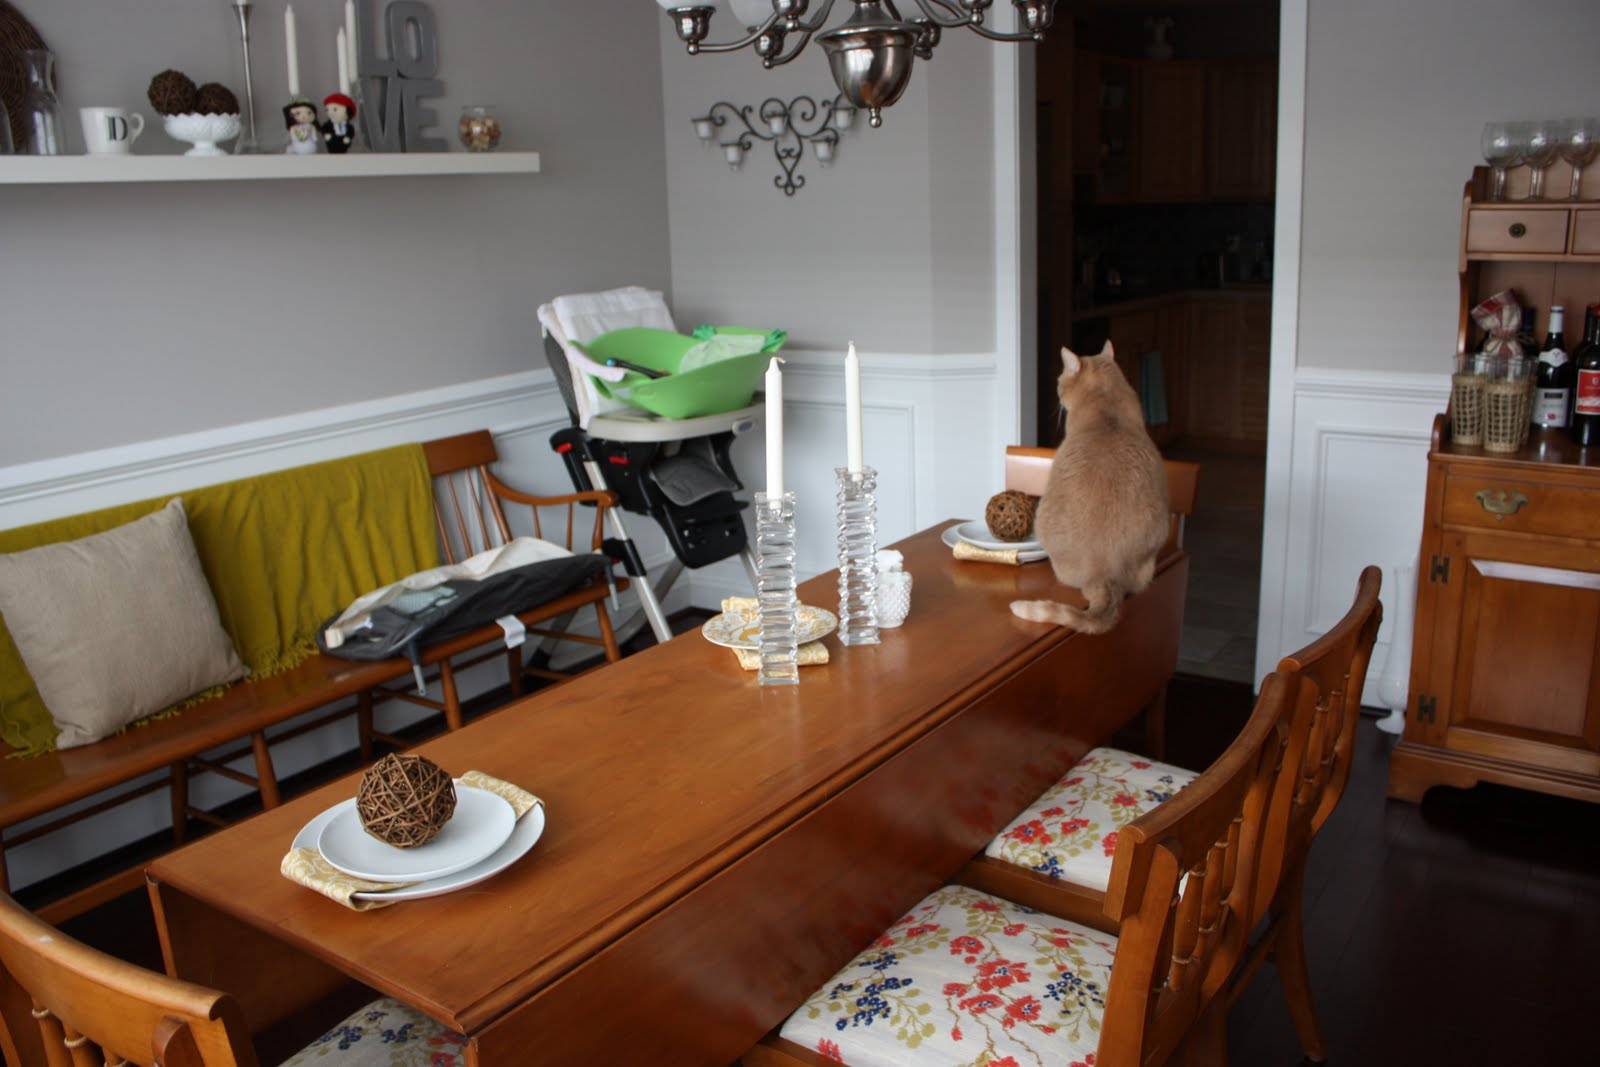 Here Was Our Messy Junky Dining Room Just Last Week With The Old Set Of Furniture And A Bunch Other Crap Weve Accumulated Like White Armoire